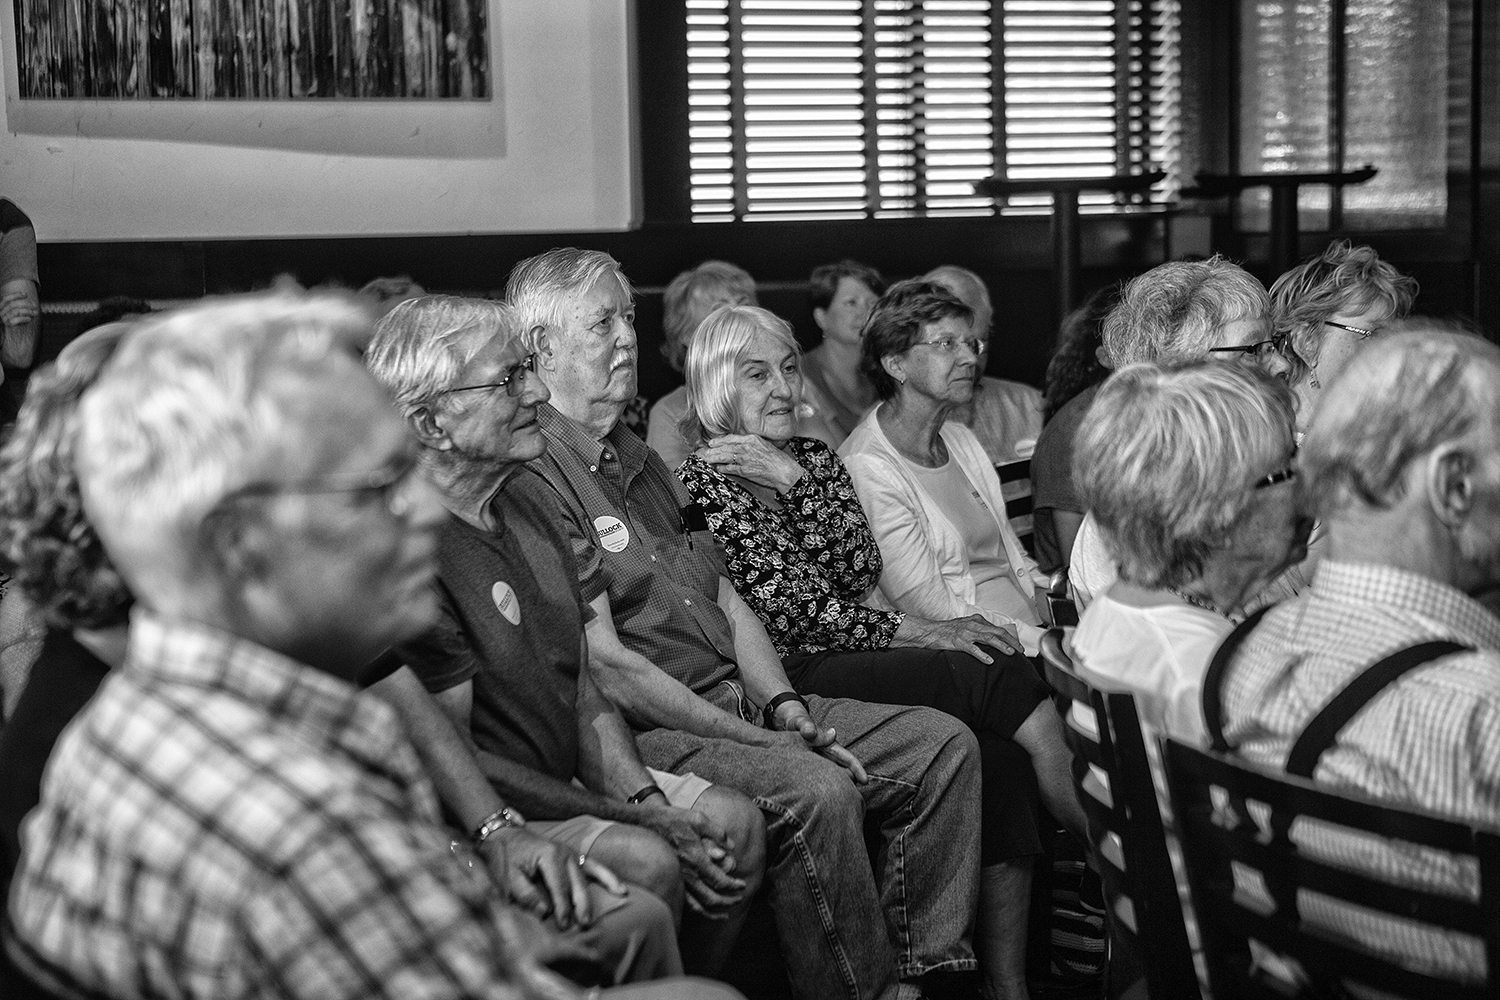 Attendees+listen+during+Governor+of+Montana+Steve+Bullock%E2%80%99s+meet+and+greet+in+Blackstone+on+July+10%2C+2019.+